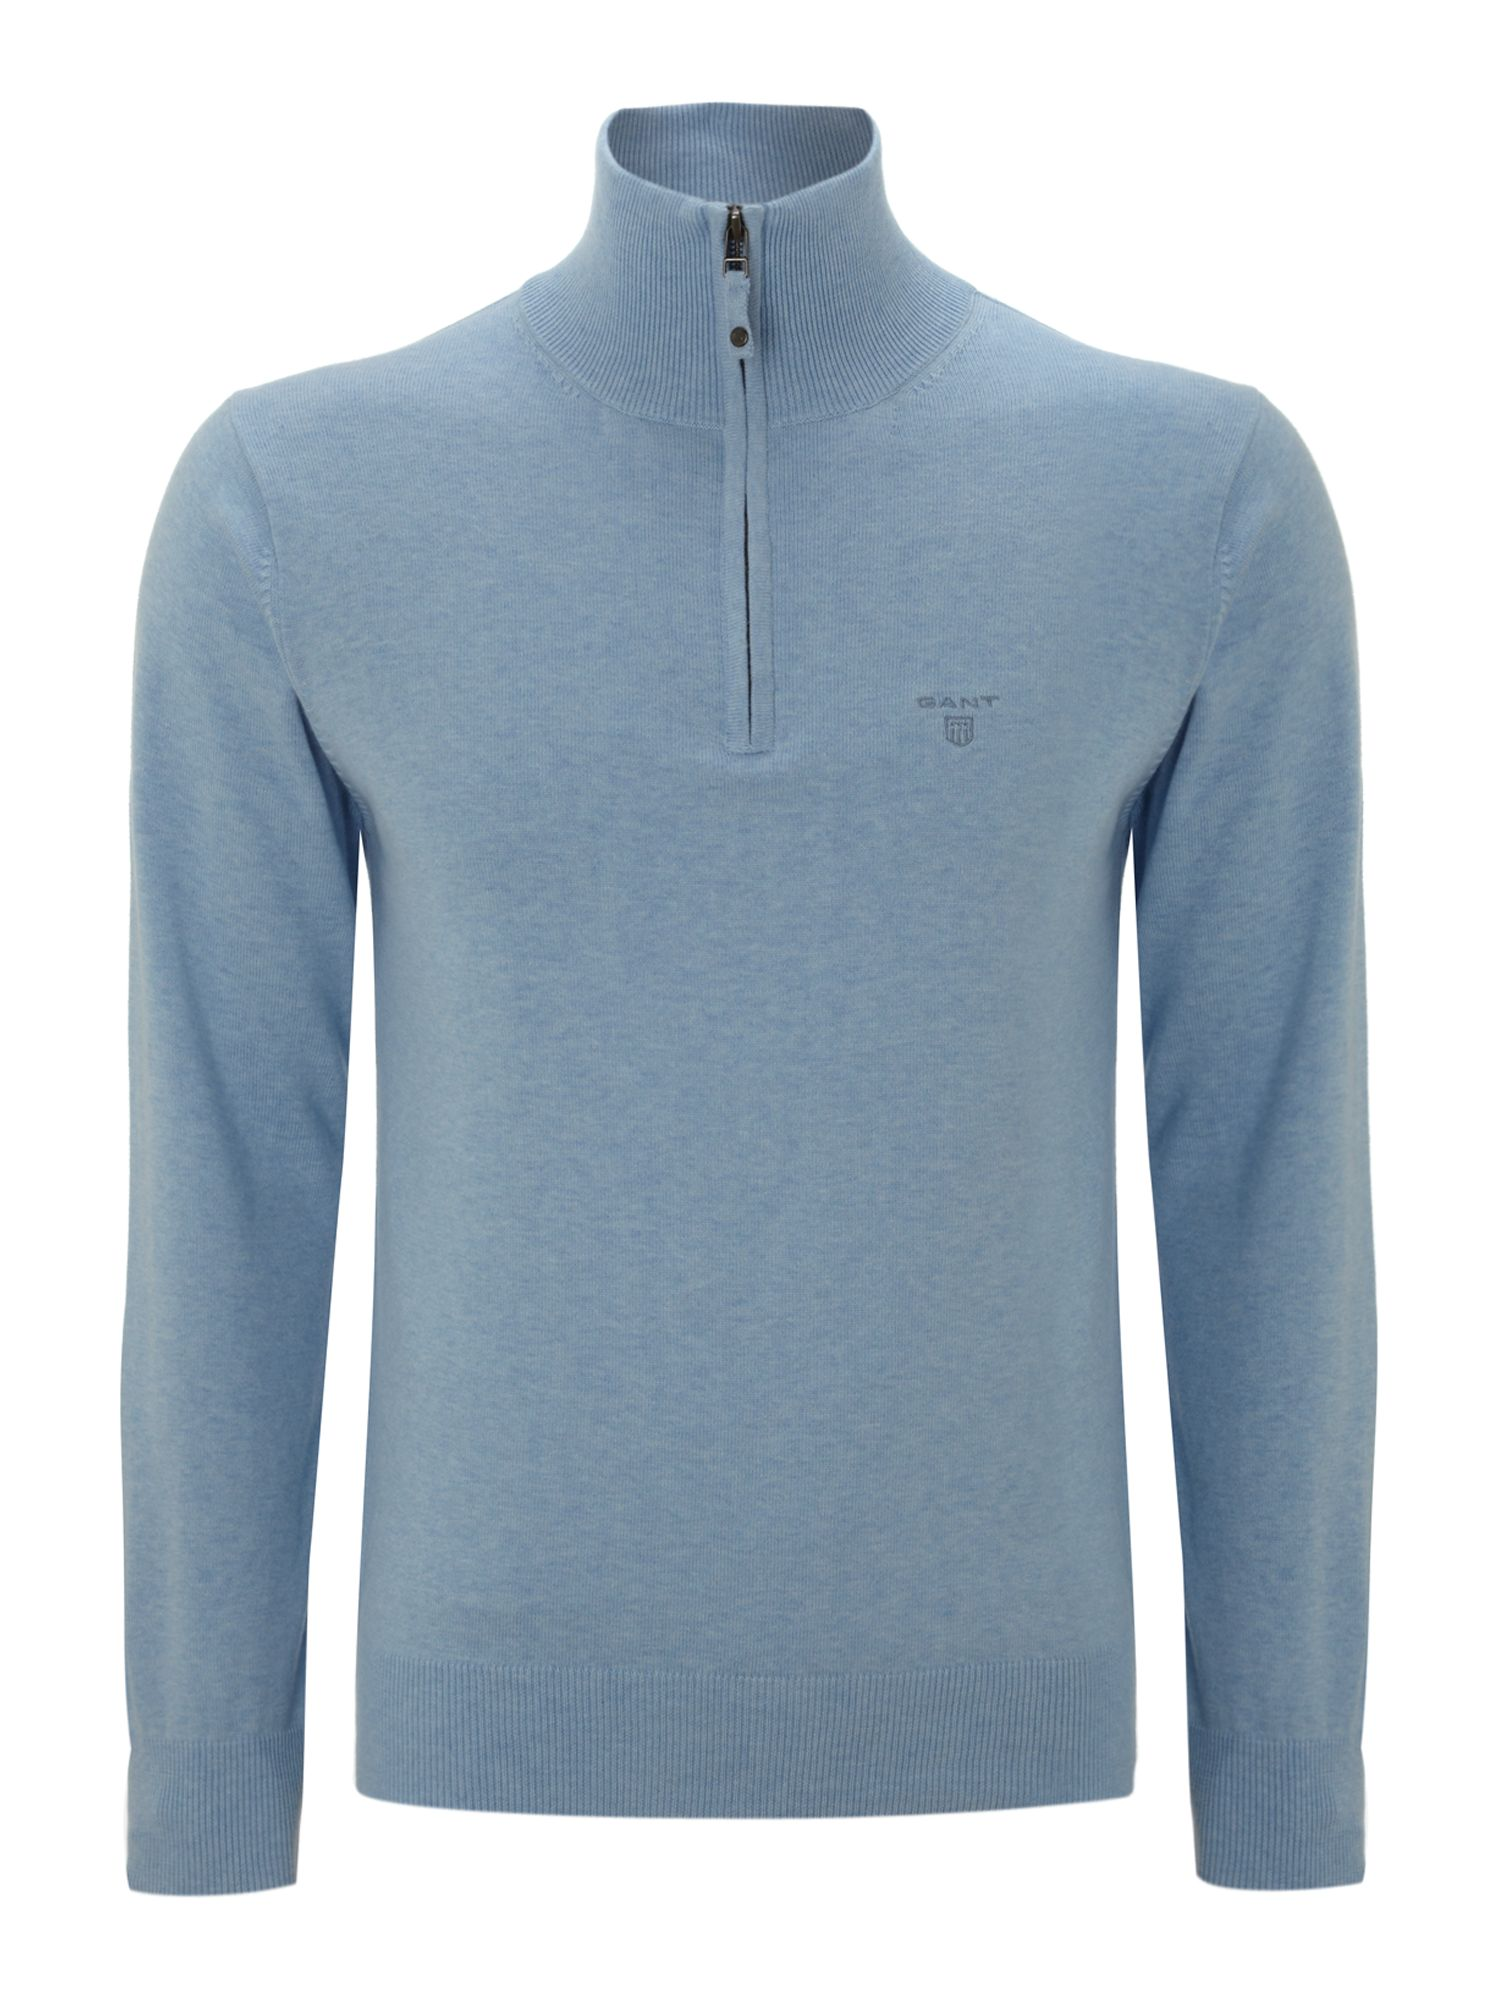 Light Blue Sweater For Women